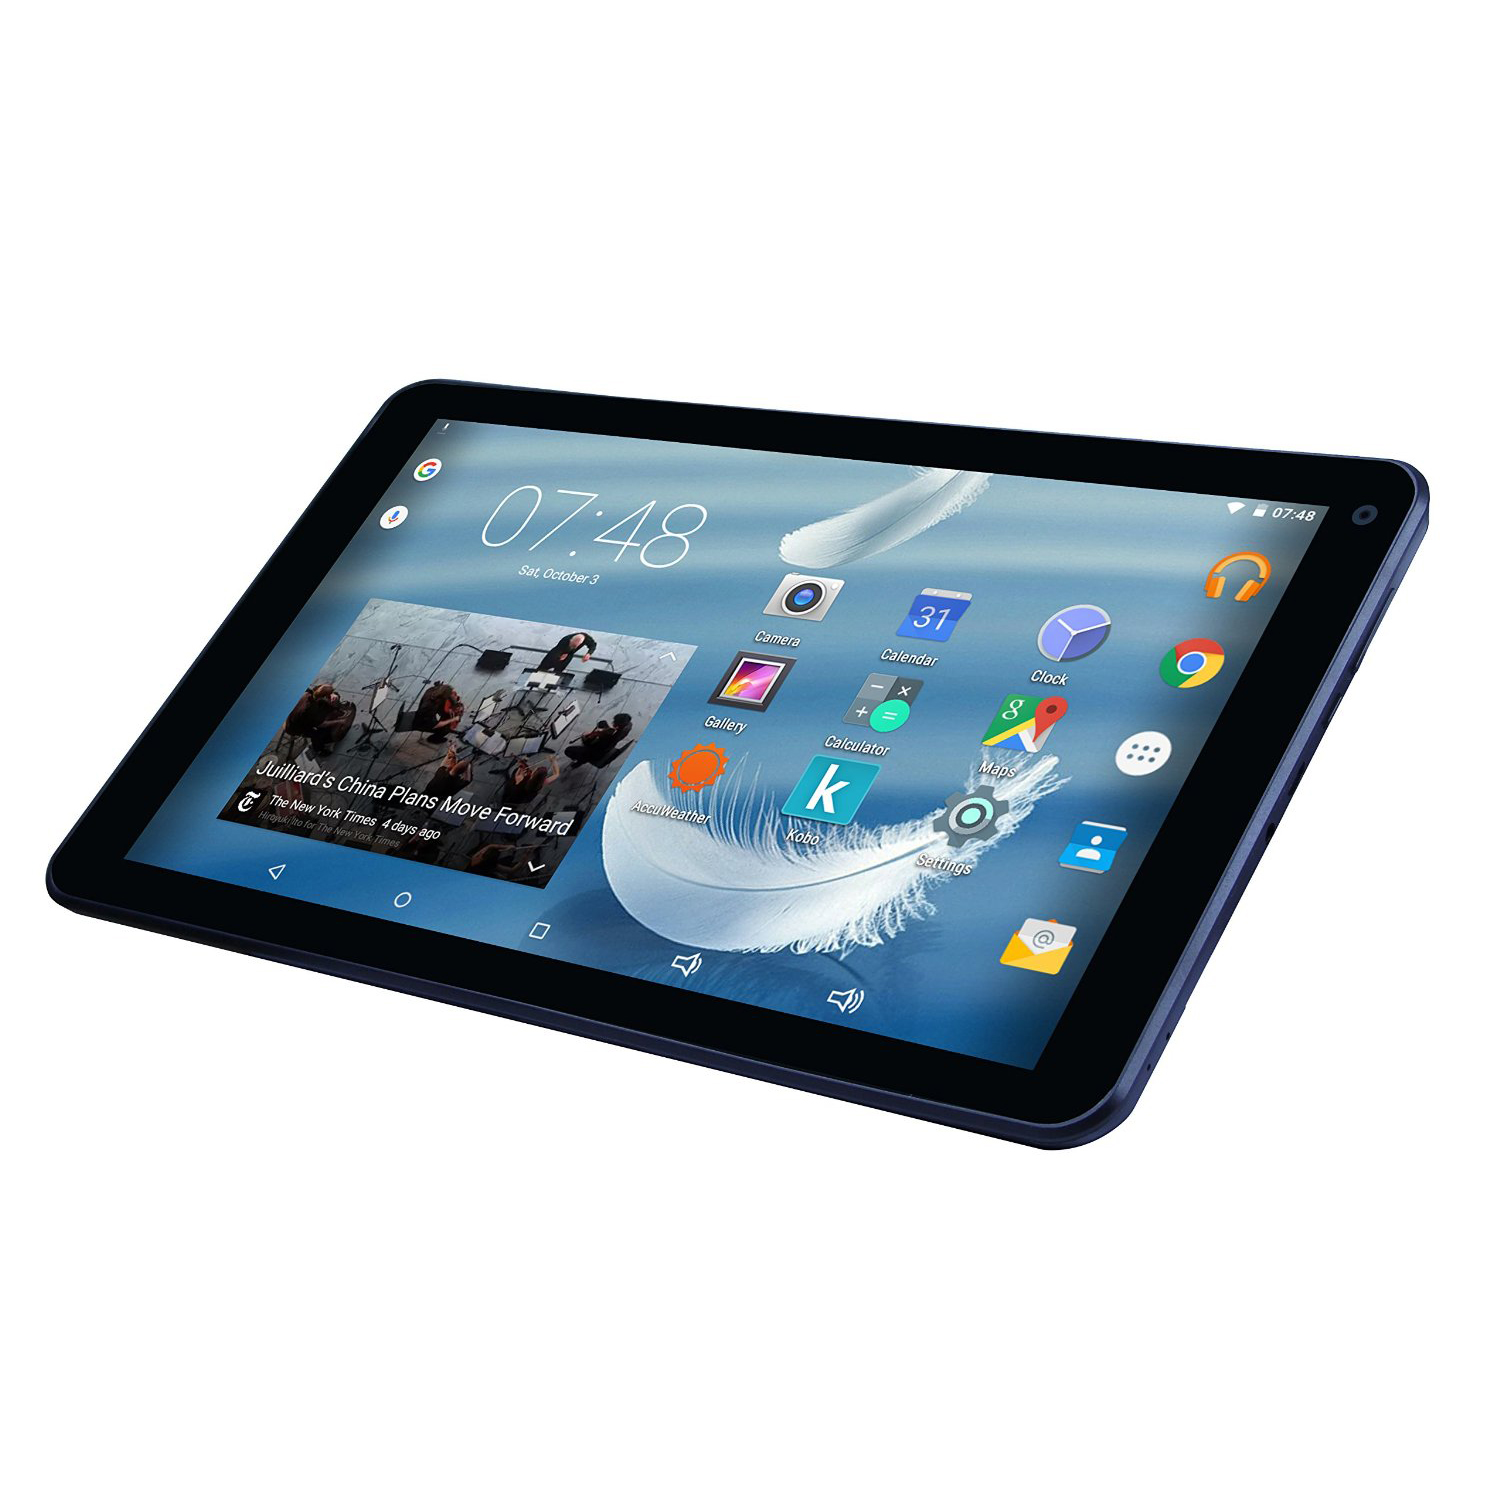 SP1026 10IN 1GB 16GB ANDROID 5.0 64BIT QC 1.2G 1024X600 BT GPS